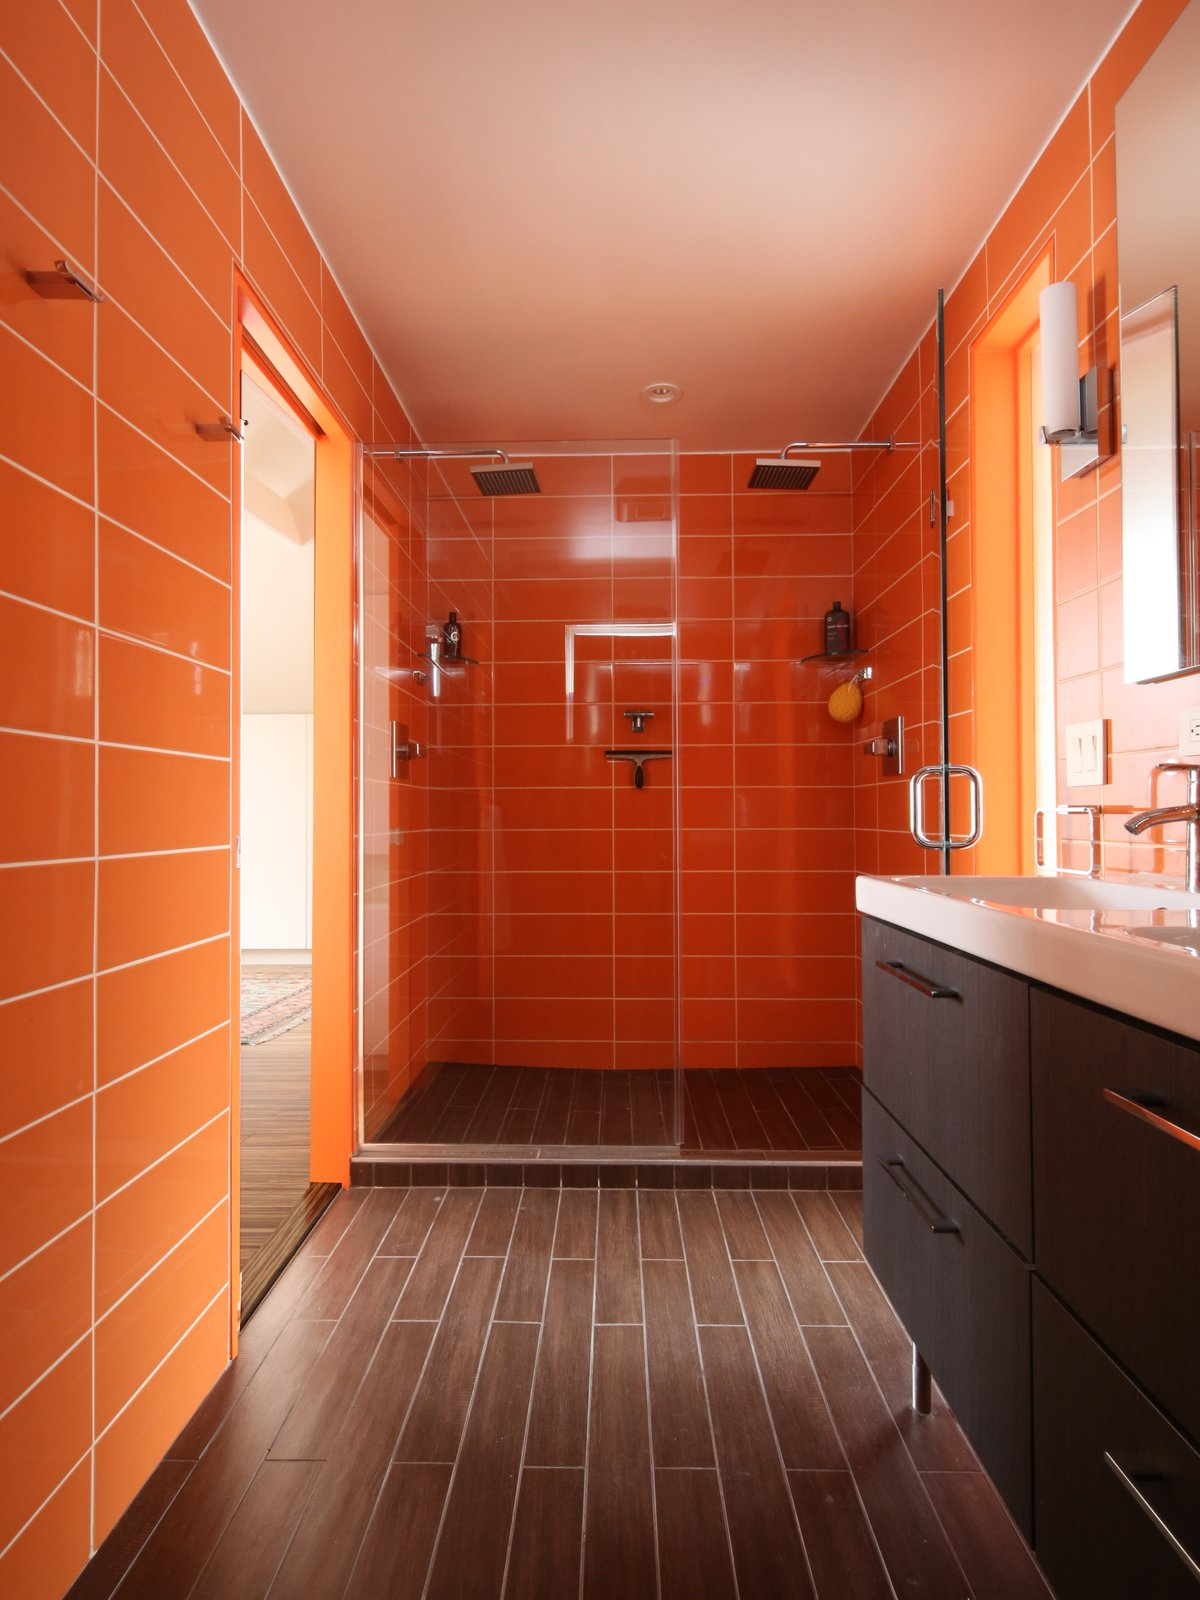 Bath Room, Ceramic Tile Wall, Full Shower, Ceramic Tile Floor, and Enclosed Shower #bath #spa #bath&spa #modern #interior #interiordesign #color #shower #renovation #walltile #rainbowazul #citruscolor #clad #ceramicplank #ikea   Photo 4 of 22 in Bath & Spa Intrigue